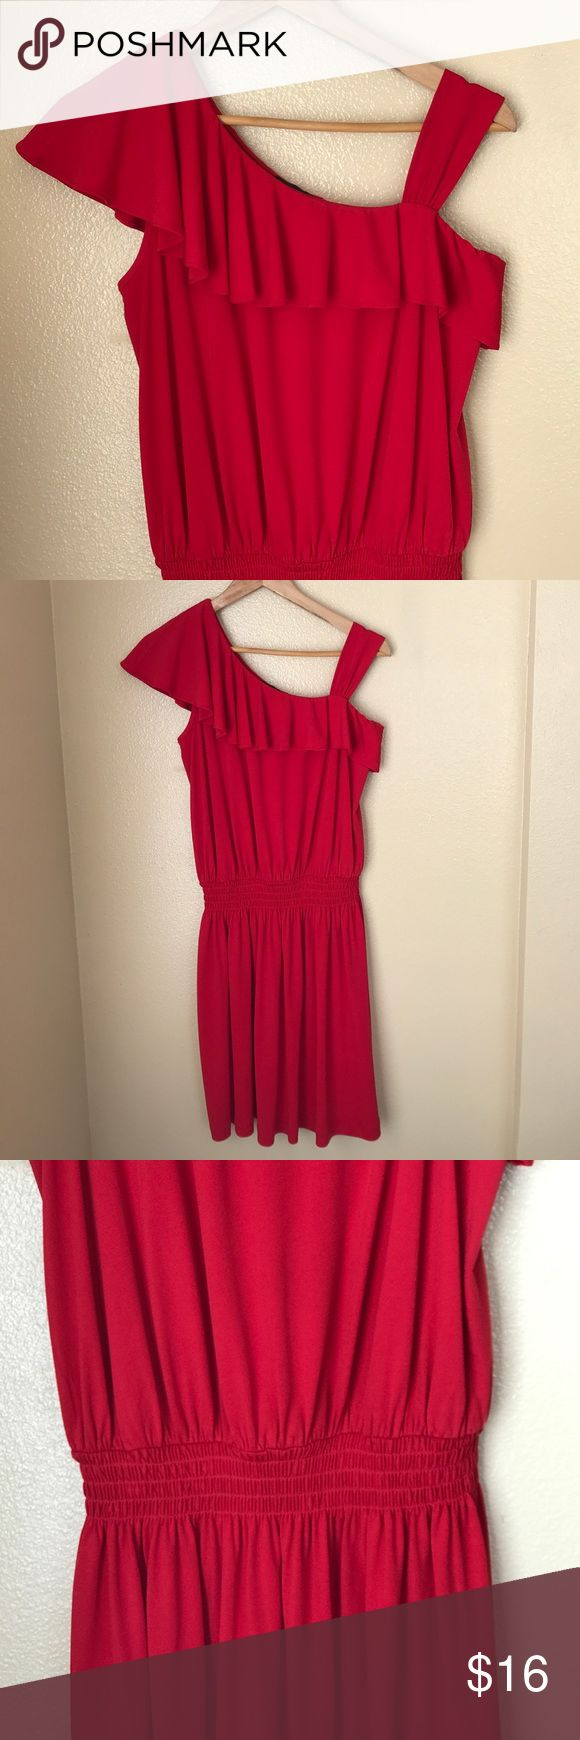 Red Guess Dress Size 4 • Gently use • Size 4 • Cinched at the waist • Perfect for a Christmas party!! • Guess Dresses Mini